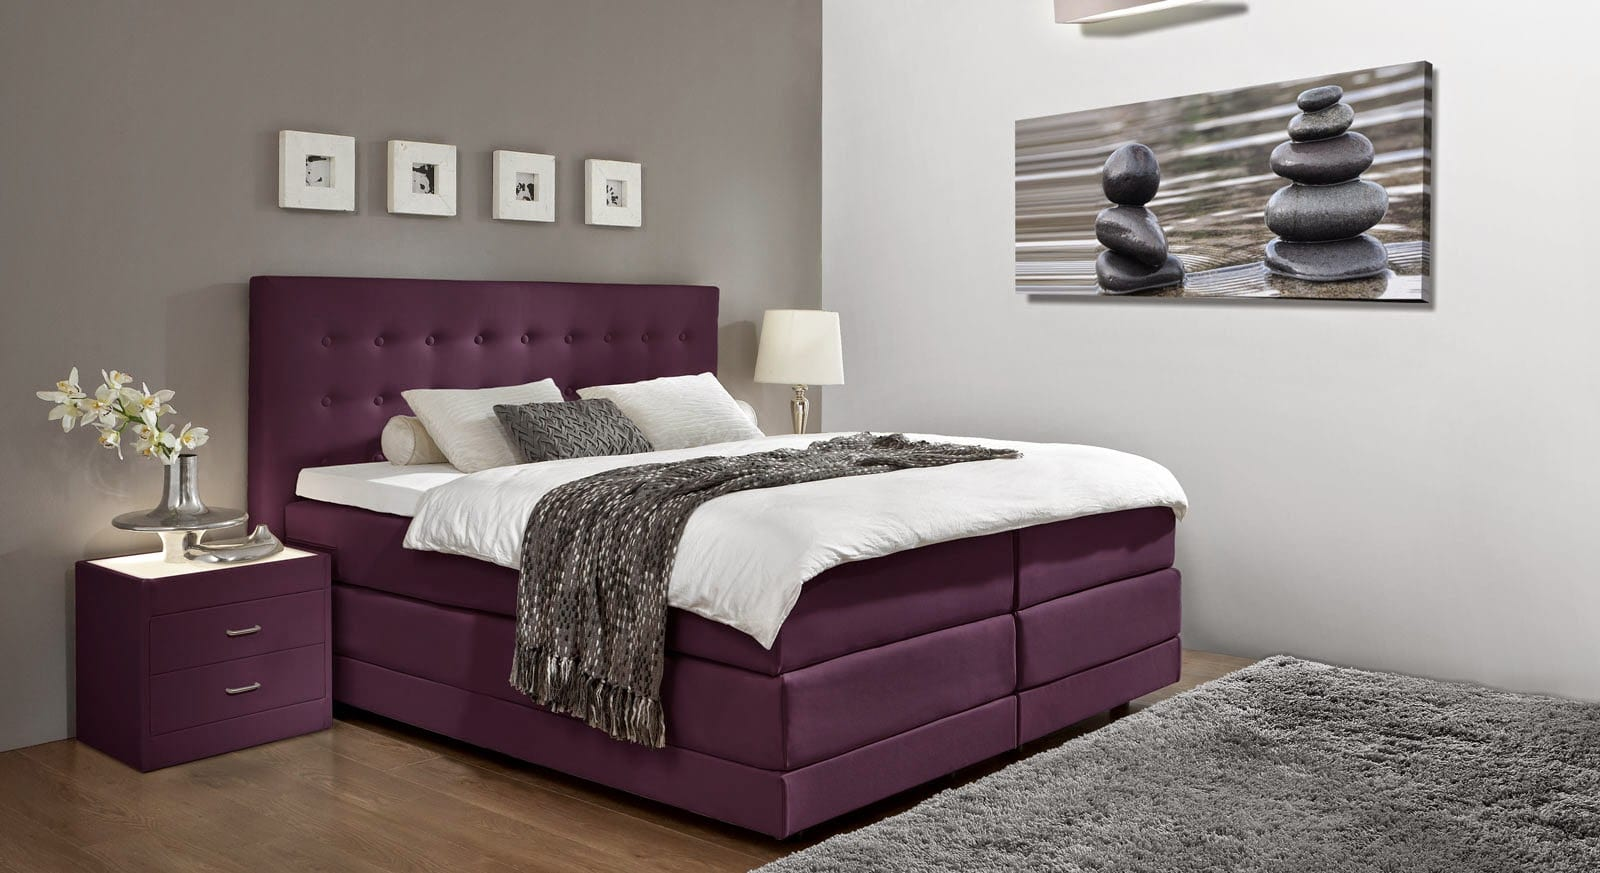 El color morado para decorar dormitorios modernos for Como adornar un cuarto